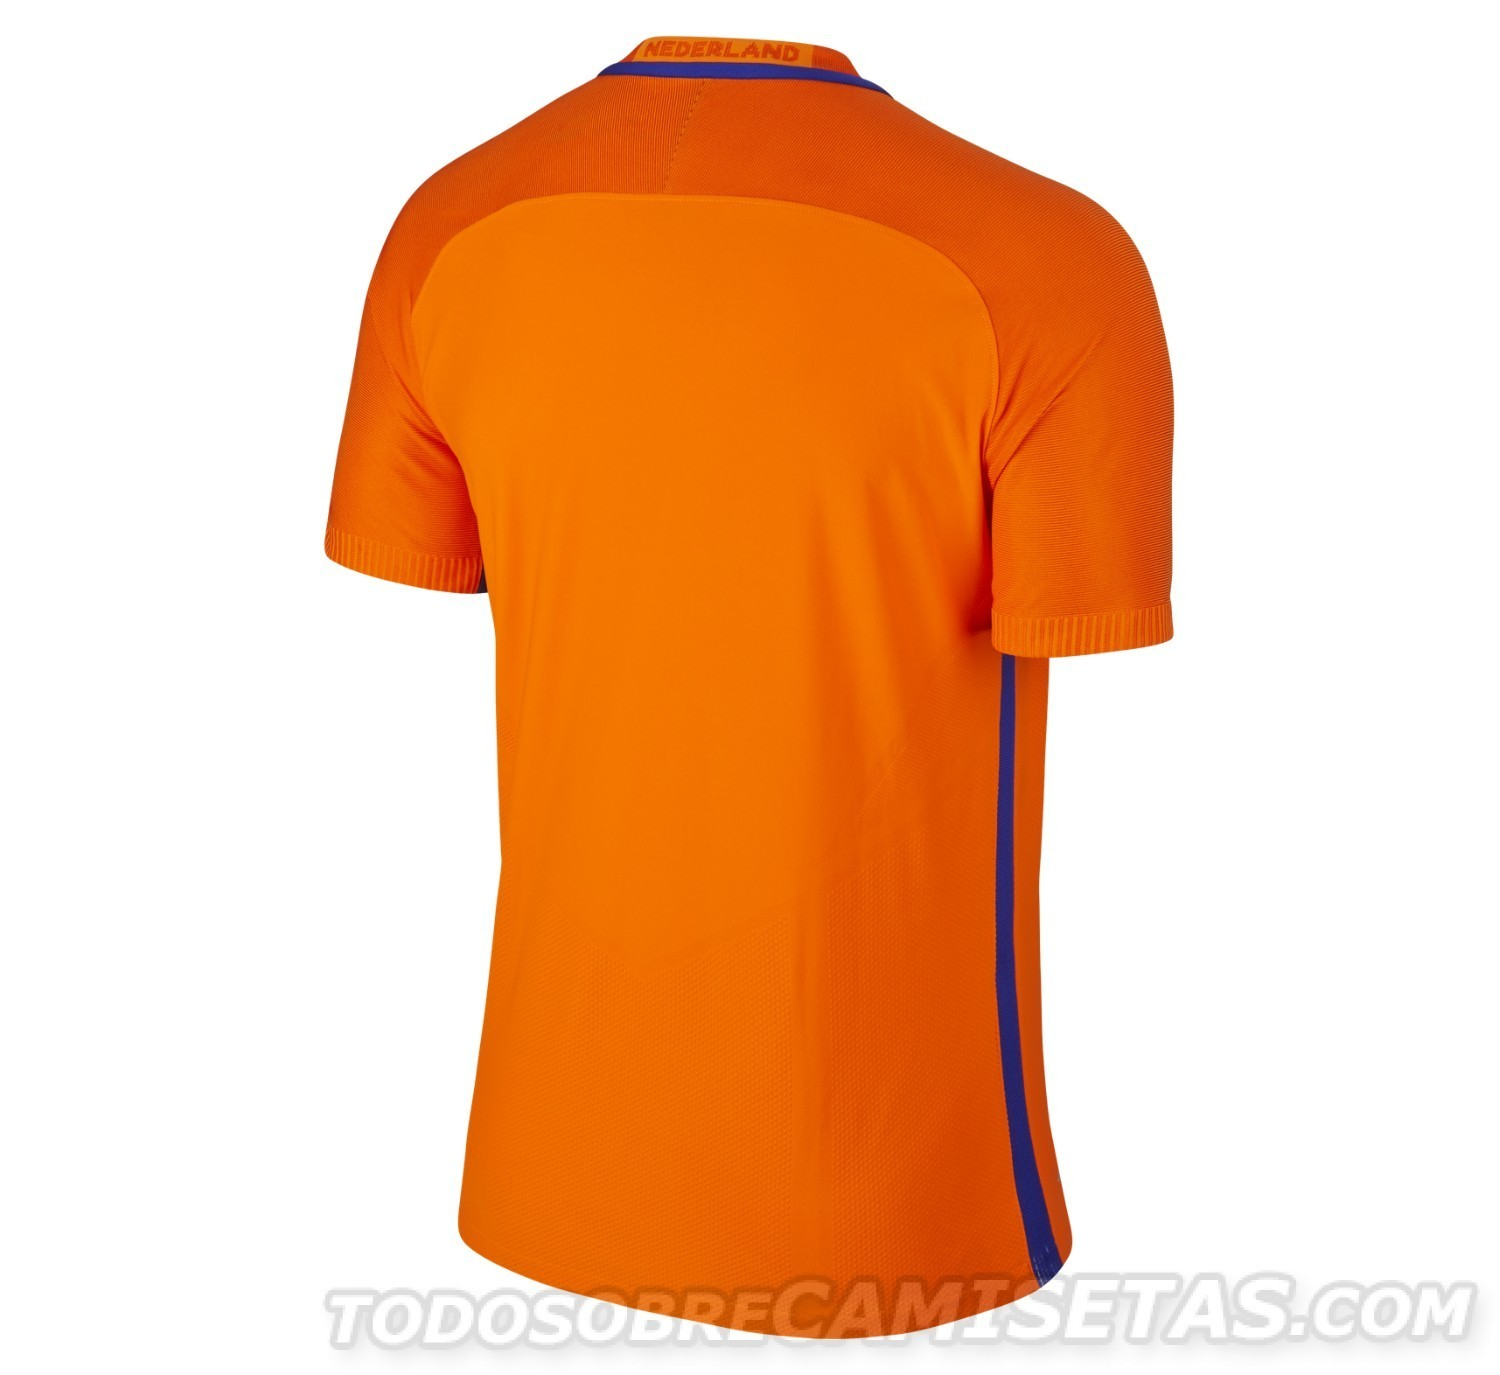 Netherlands-2016-NIKE-Euro-new-home-kit-2.jpg